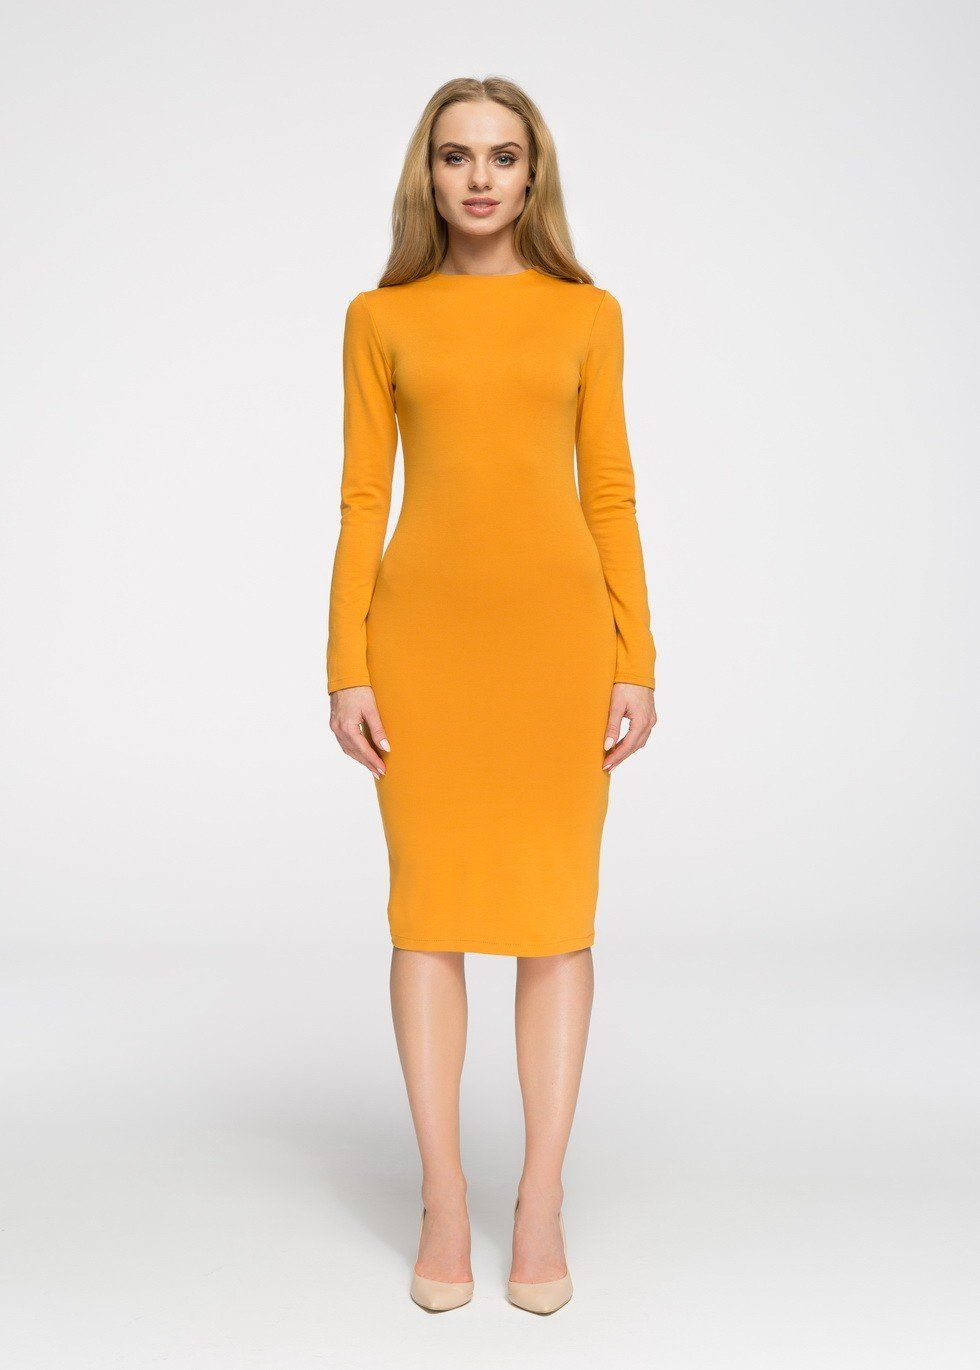 Fitted Dress With Long Sleeves Mustard Yellow Bodycon Dress Knit Midi Dress Dresses [ 1370 x 980 Pixel ]